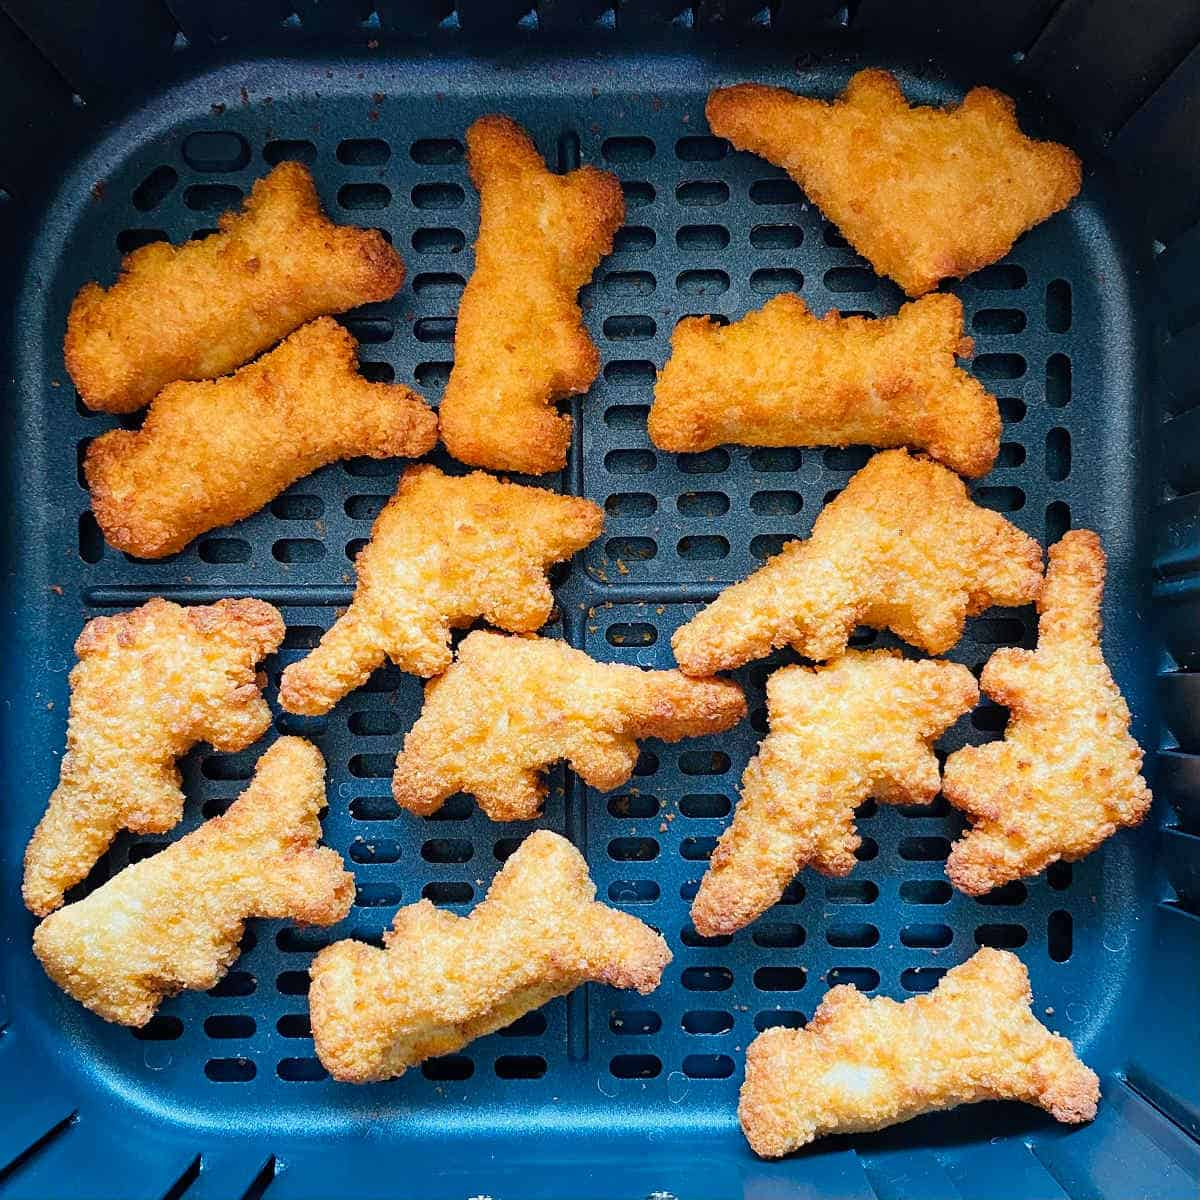 cooked dino nuggets in air fryer basket